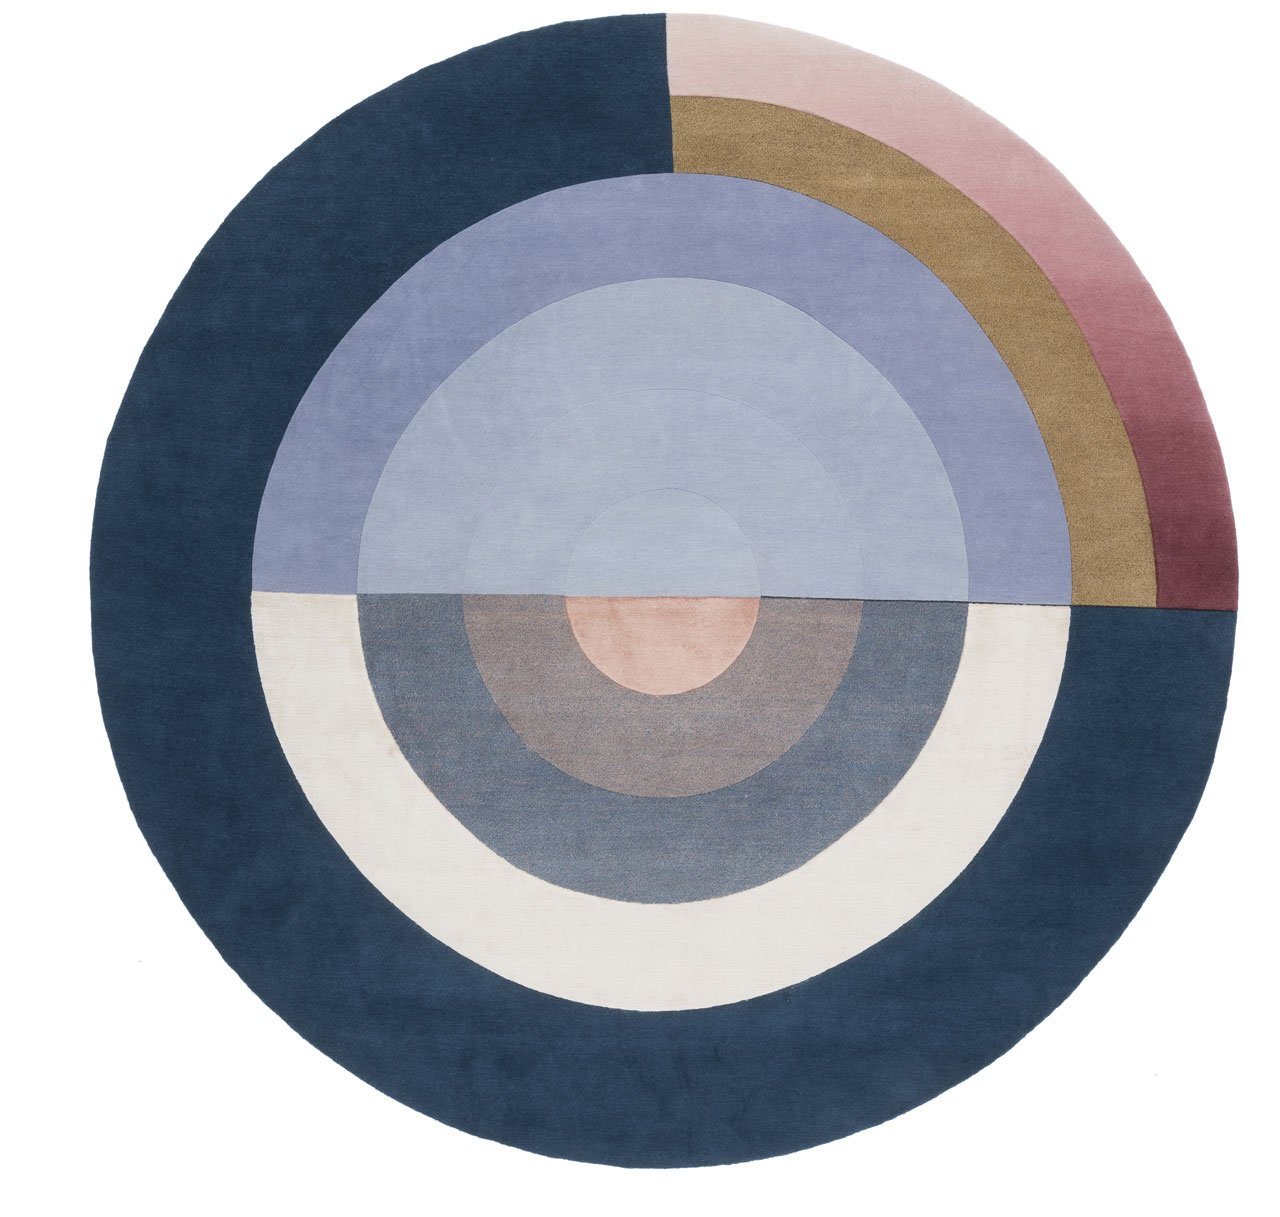 BLISS ROUND BLUE by Studio Mae Engelgeer for cc-tapis.